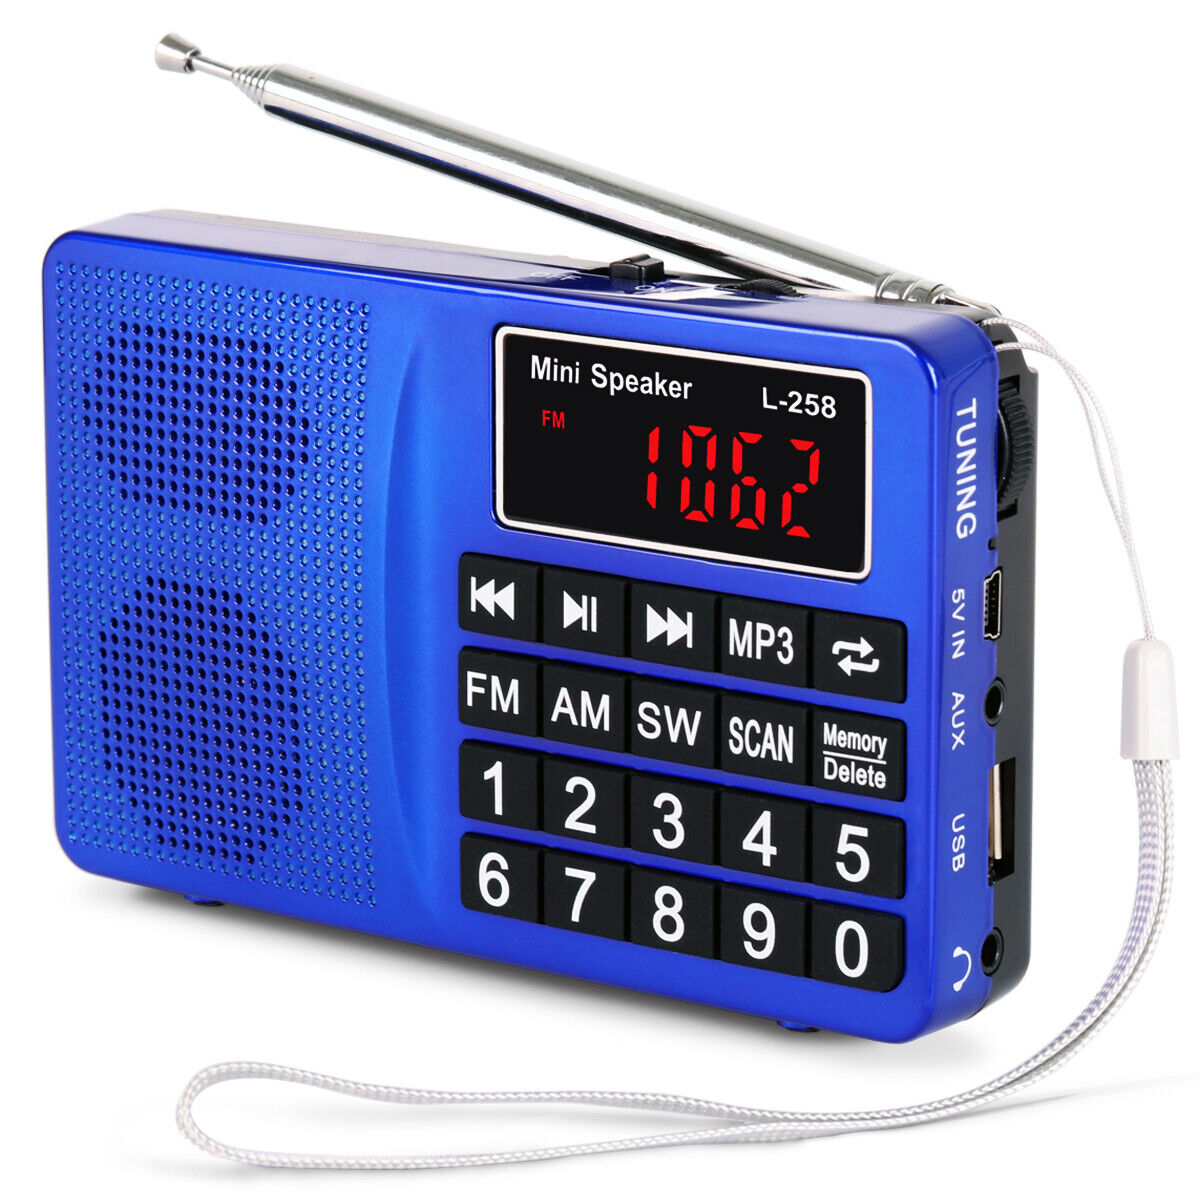 PRUNUS Portable SW/FM/AM(MW)MP3 Micro SD USB radio with